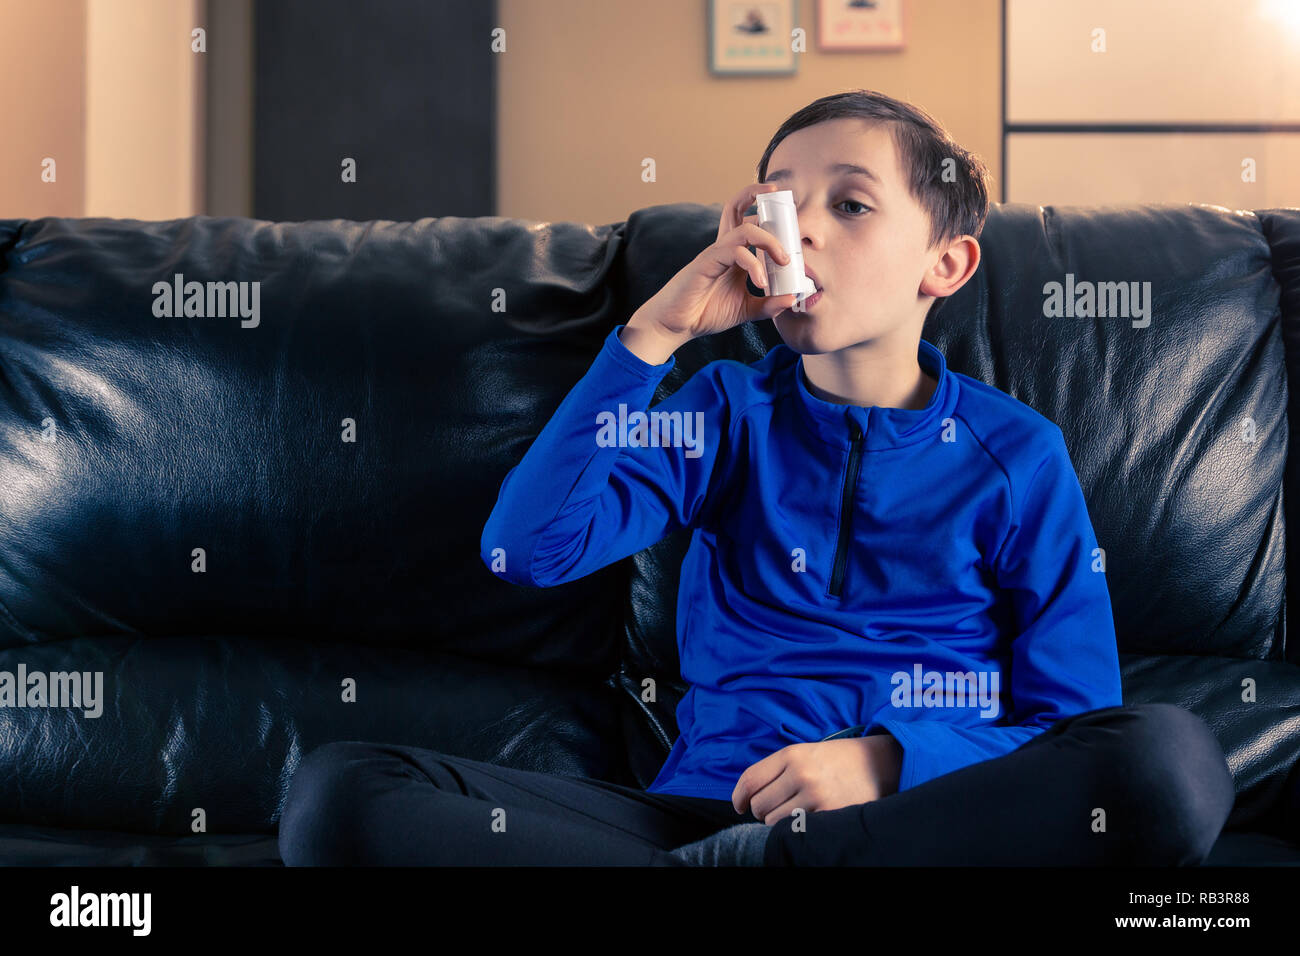 8 year old boy wearing sportive clothing inhaling with an asthma inhaler sitting in sofa. Concepts : health, illness, doping - Stock Image